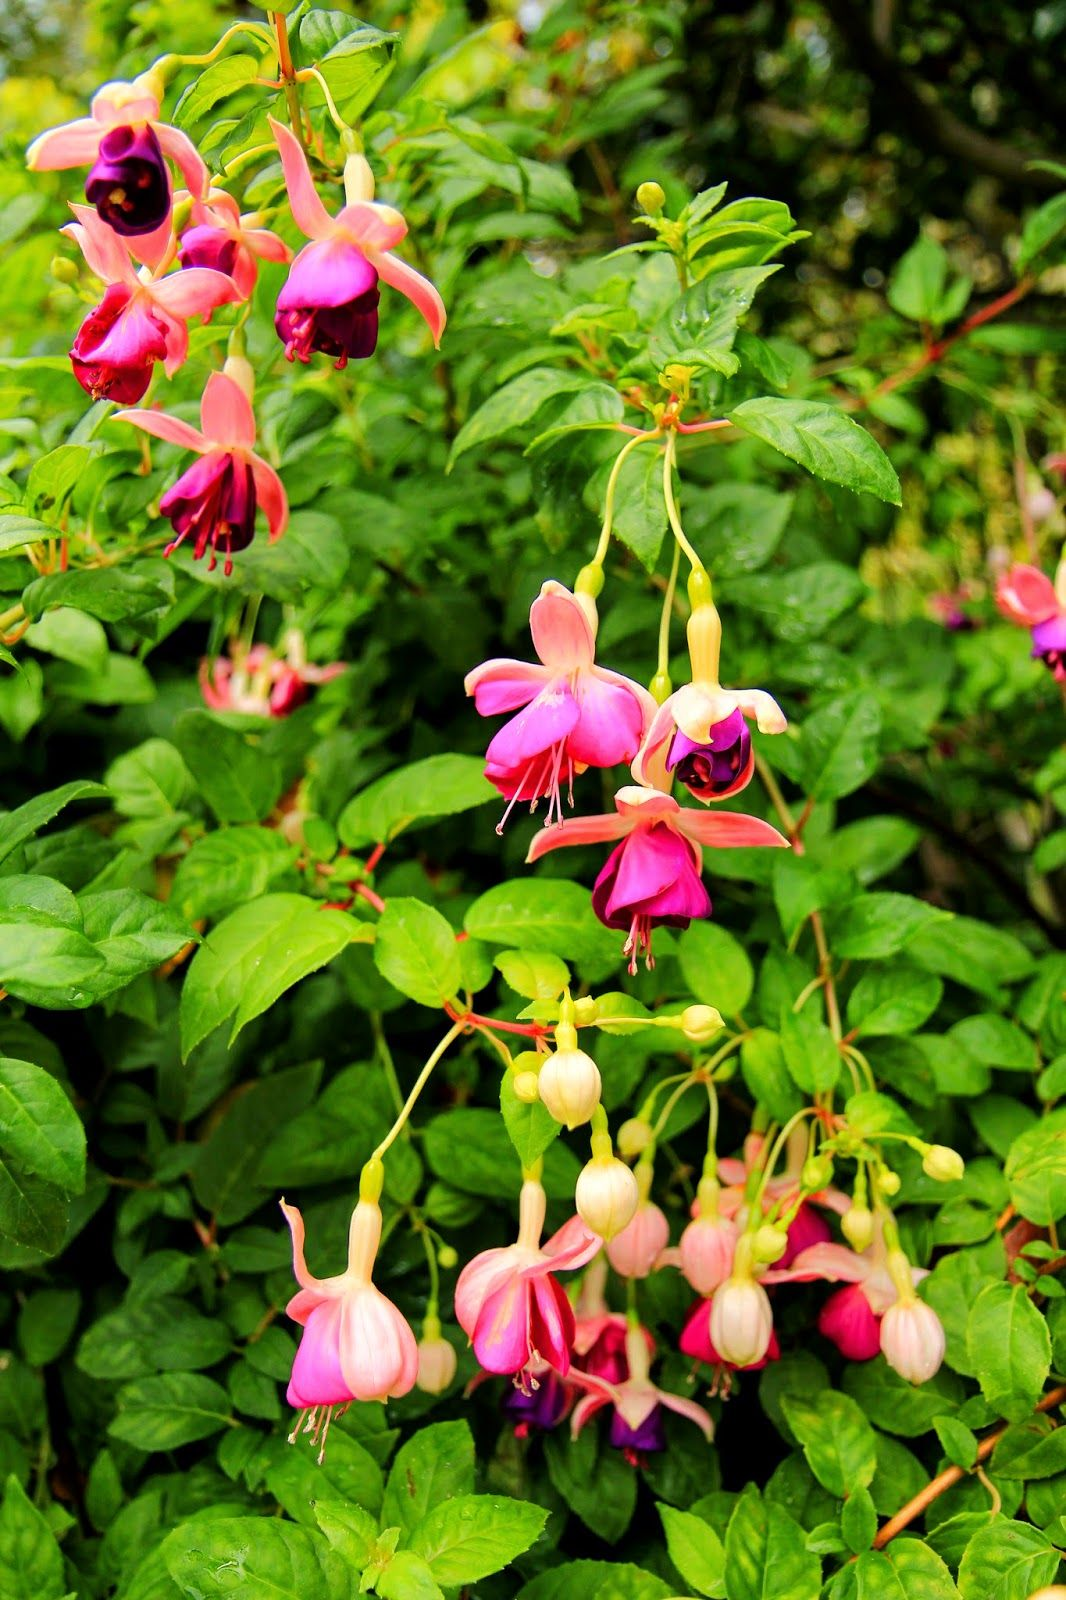 Friday Flower Pick Freedom And Fuchsias Fuchsia Flowers Beautiful Flowers Flower Picks